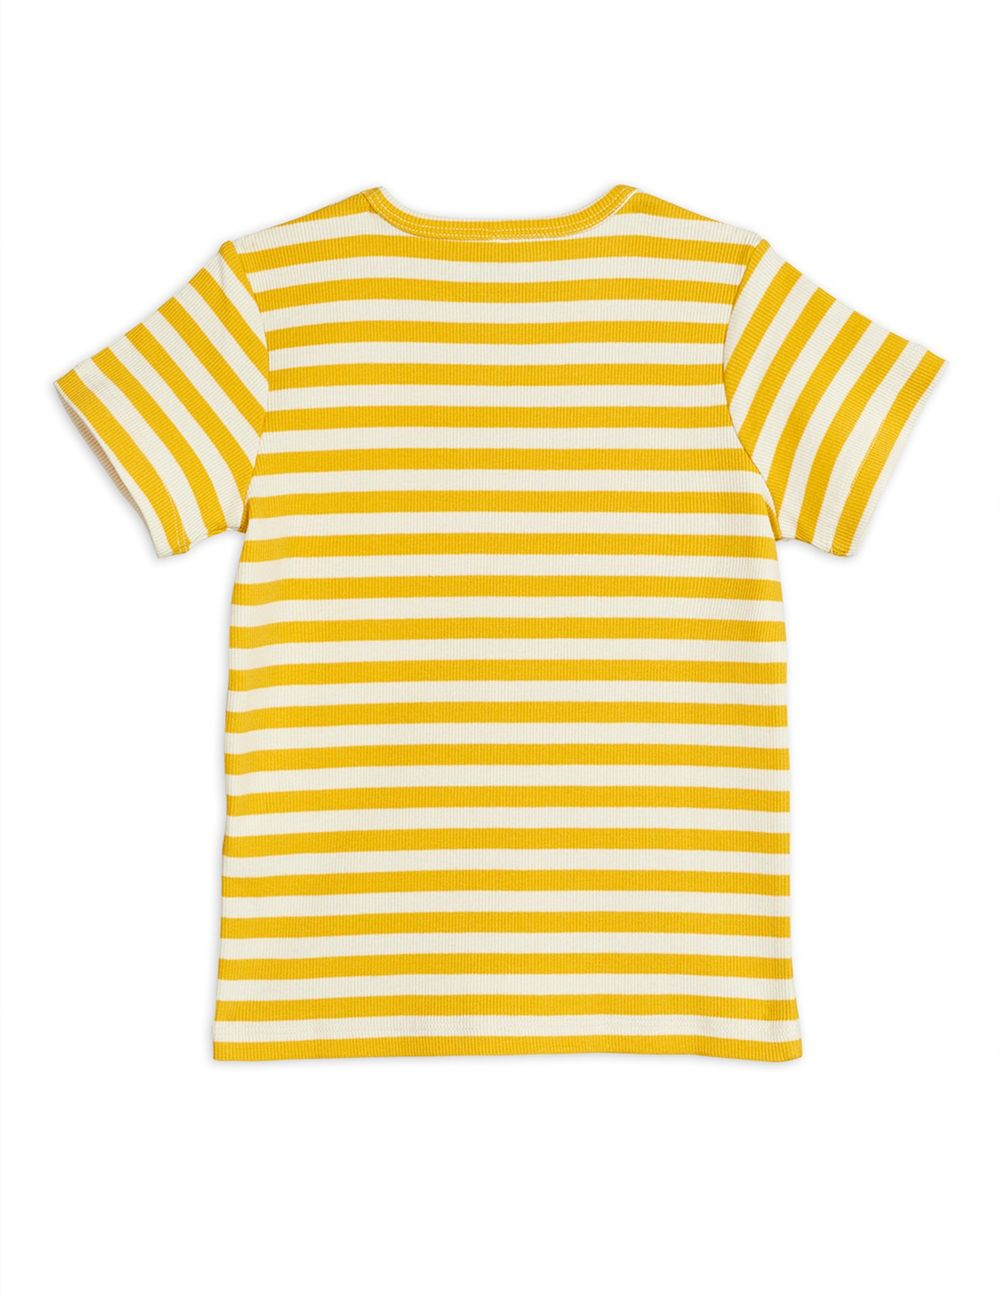 MINI RODINI STRIPE RIB SS TEE, YELLOW